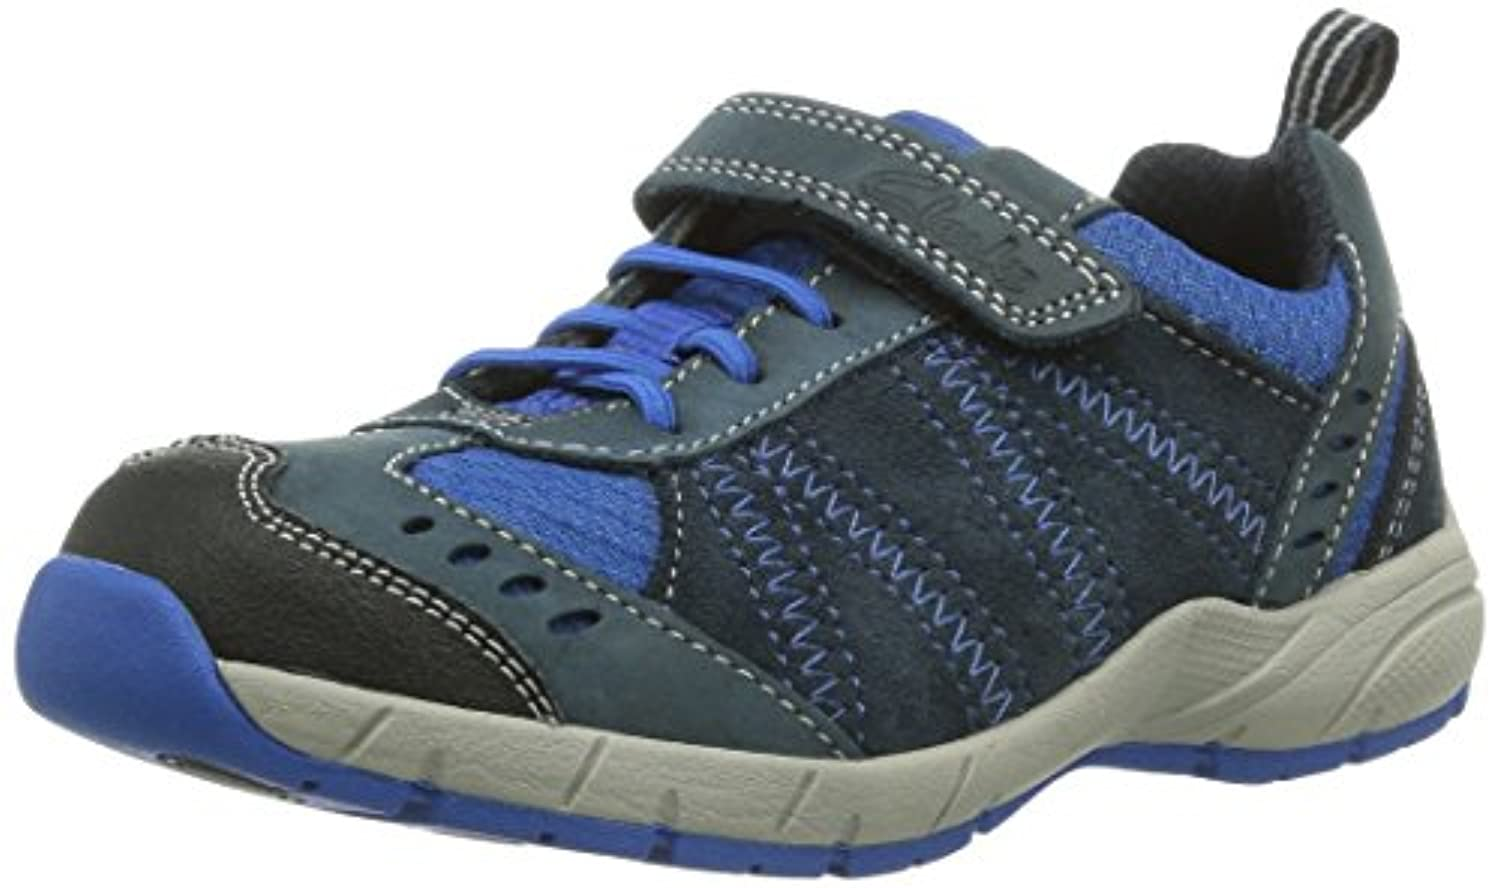 Clarks Rampart Up Gtx, Men's Ankle Boots, Bleu - Blau (Navy Leather), 11.5 UK Child